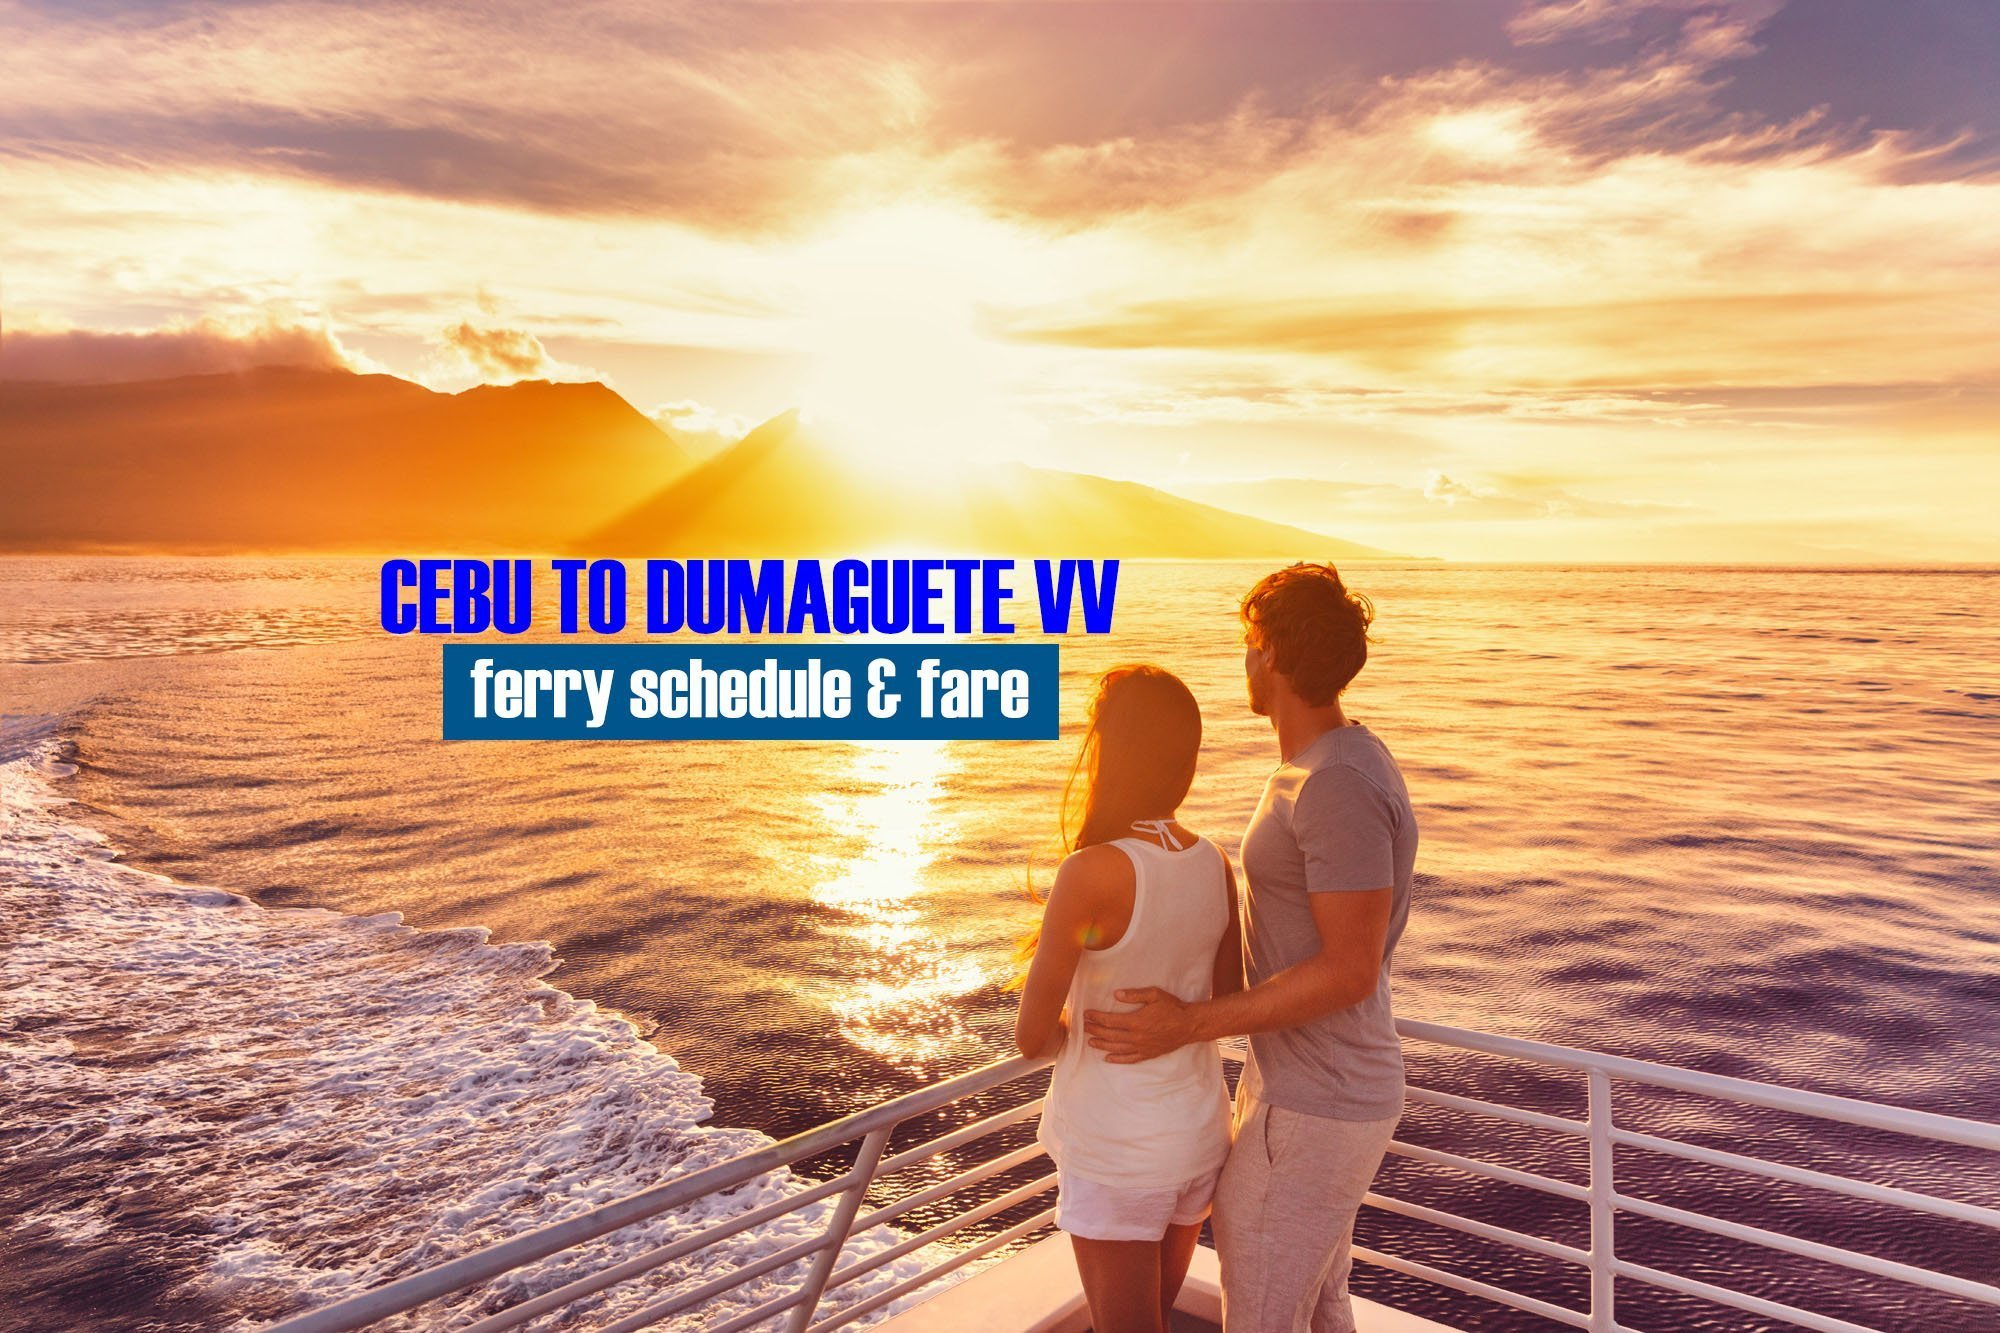 2021 Cebu to Dumaguete Ferry Schedule and Fare Rates